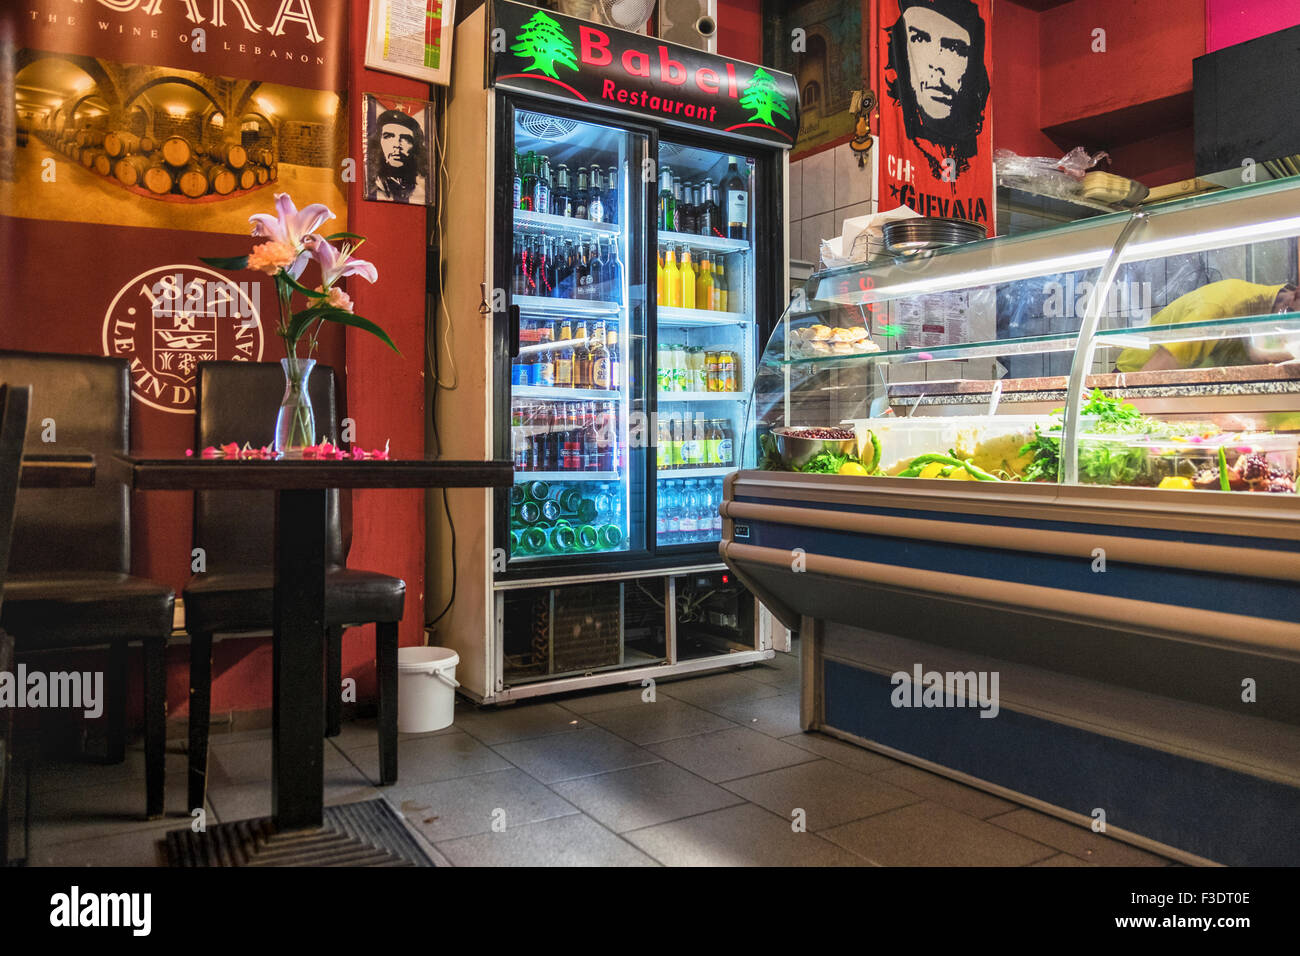 Berlin Babel Lebanese restaurant and takeaways - Exotic food, Colourful interior artwork and flower adorned alfresco - Stock Image